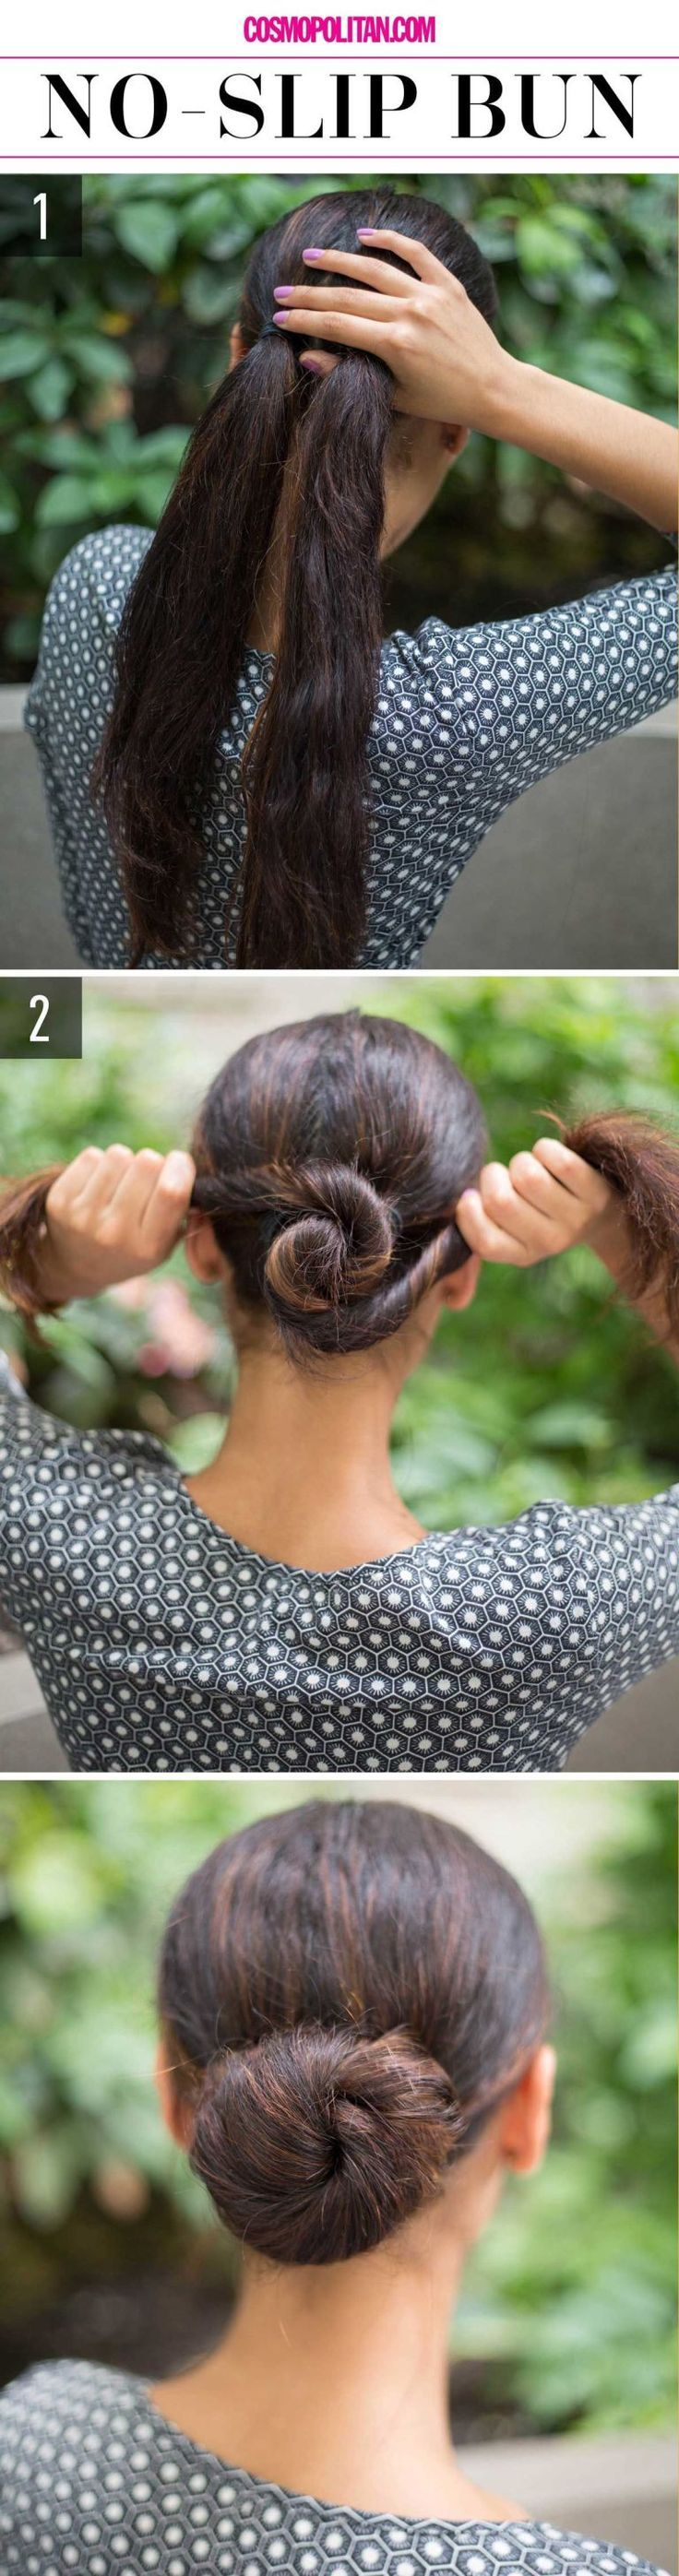 23 best Hair Styles DIY s and more images on Pinterest